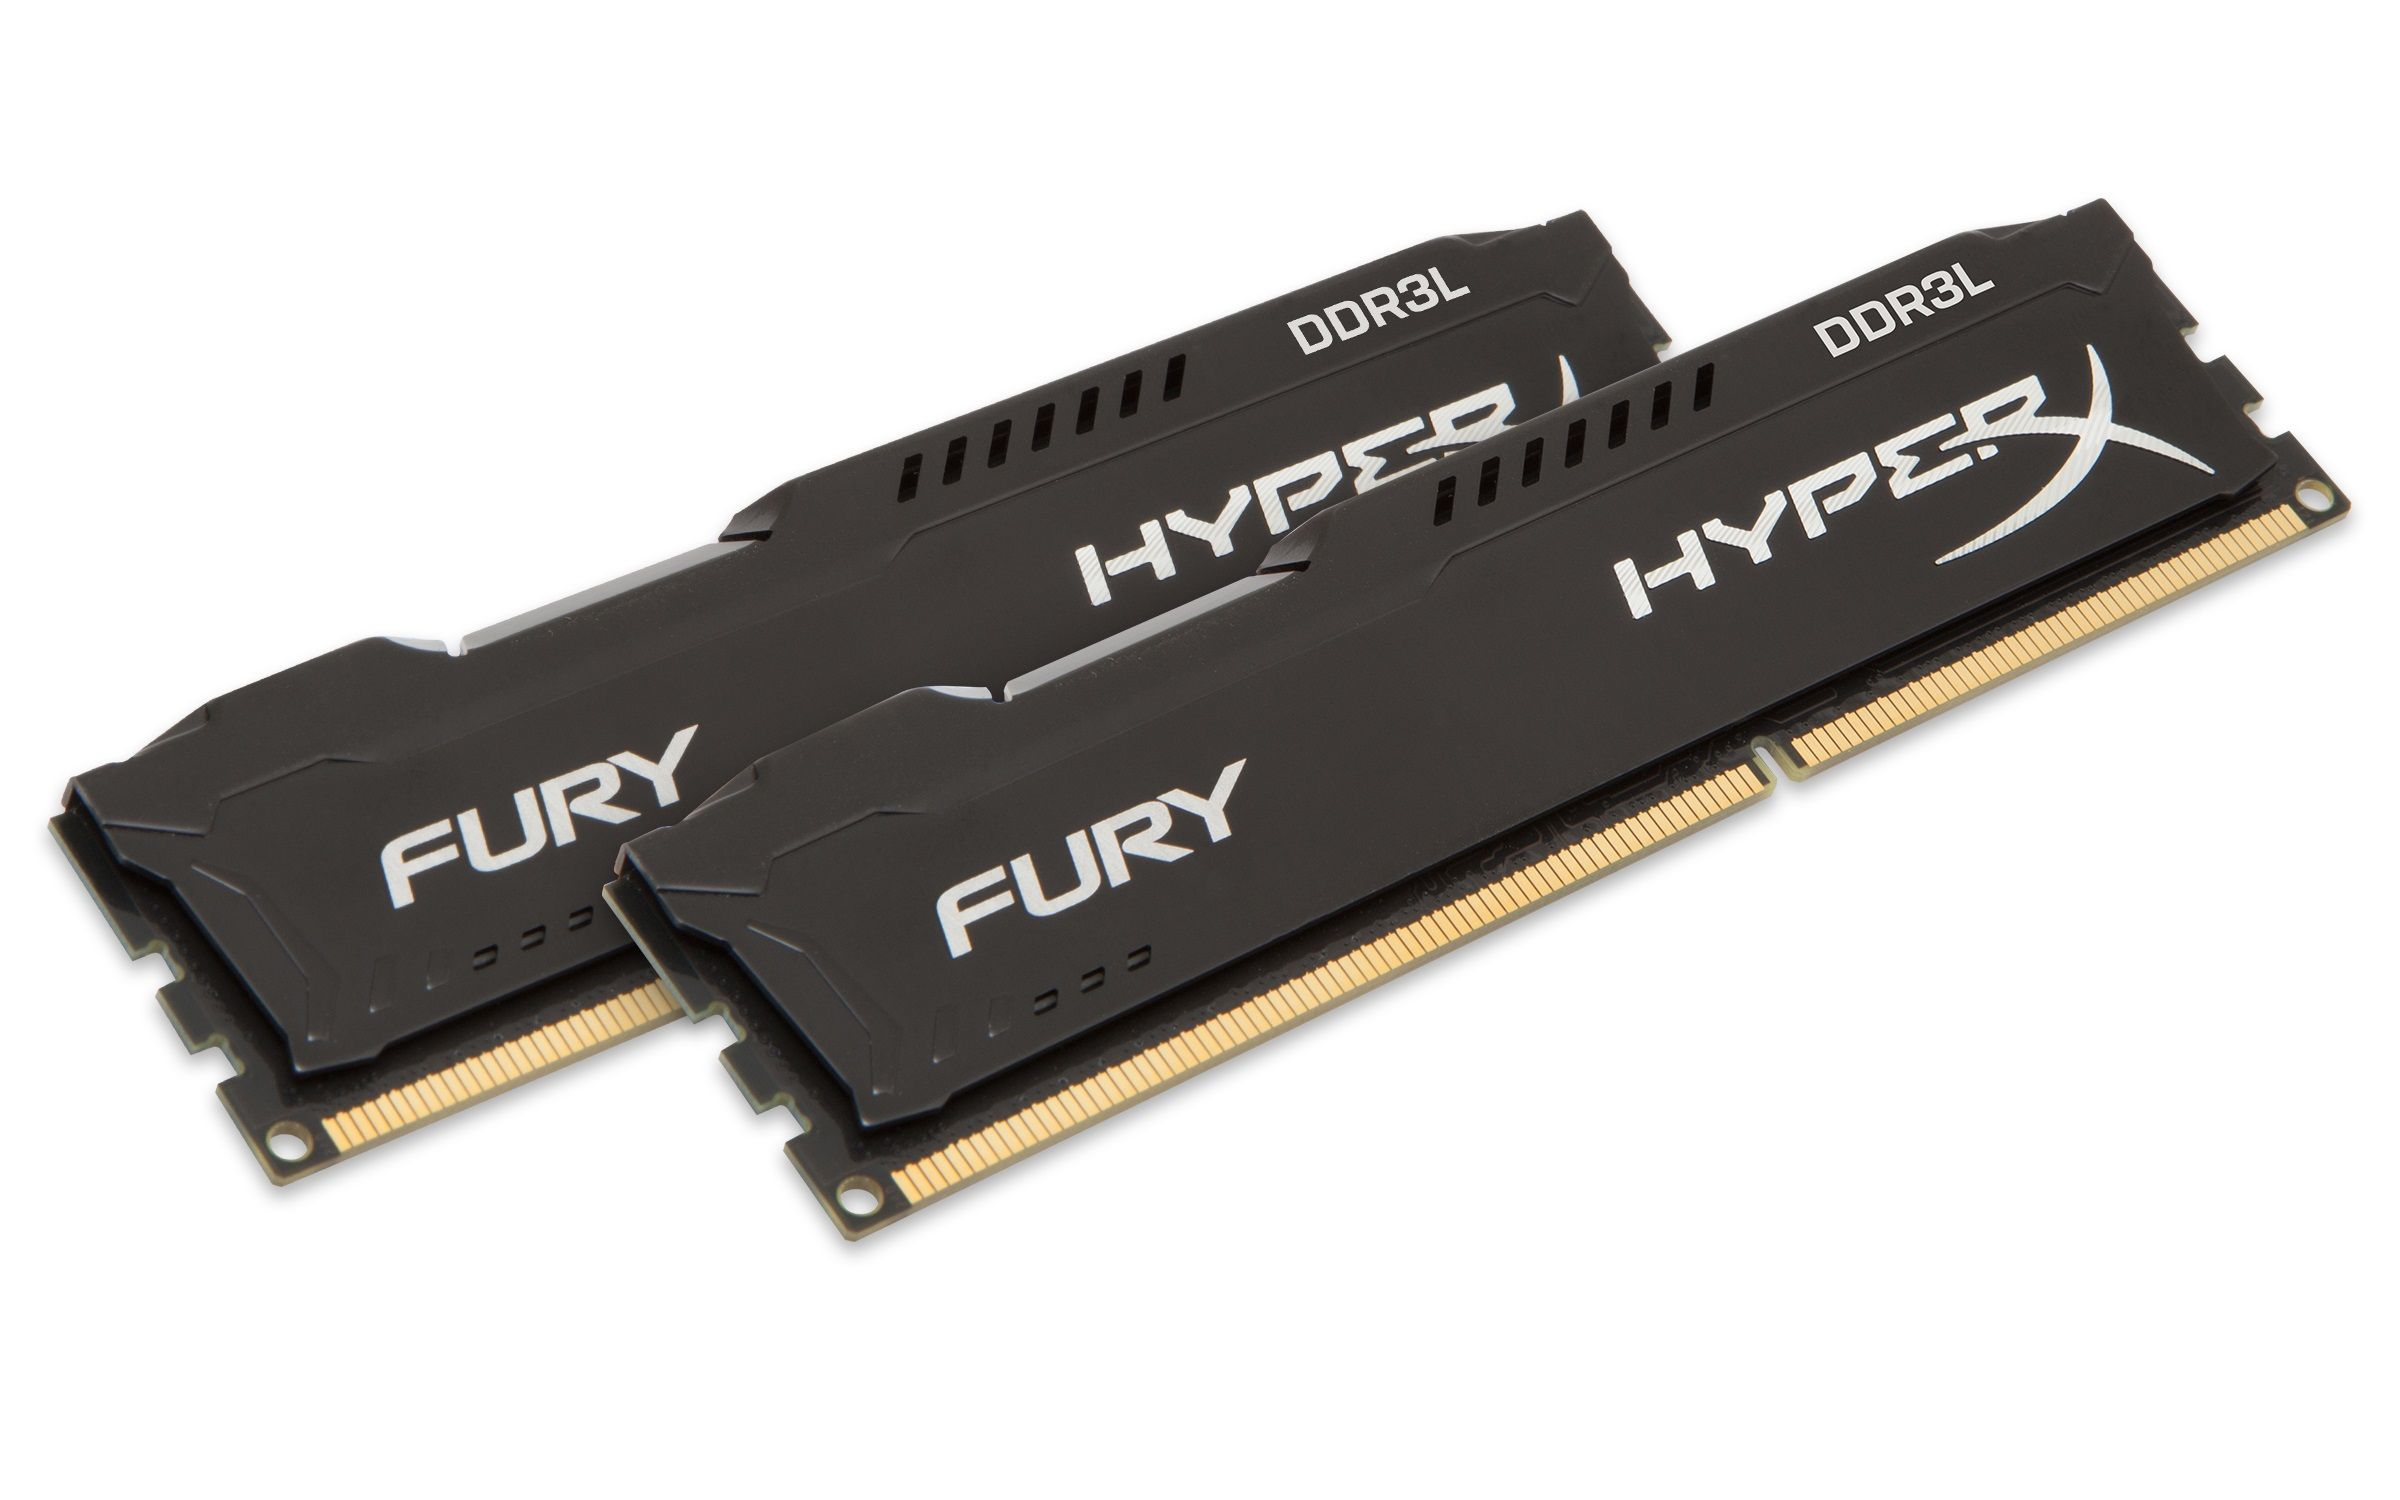 Memorie Kingston HyperX FURY Black 16GB DDR3L 1866MHz title=Memorie Kingston HyperX FURY Black 16GB DDR3L 1866MHz